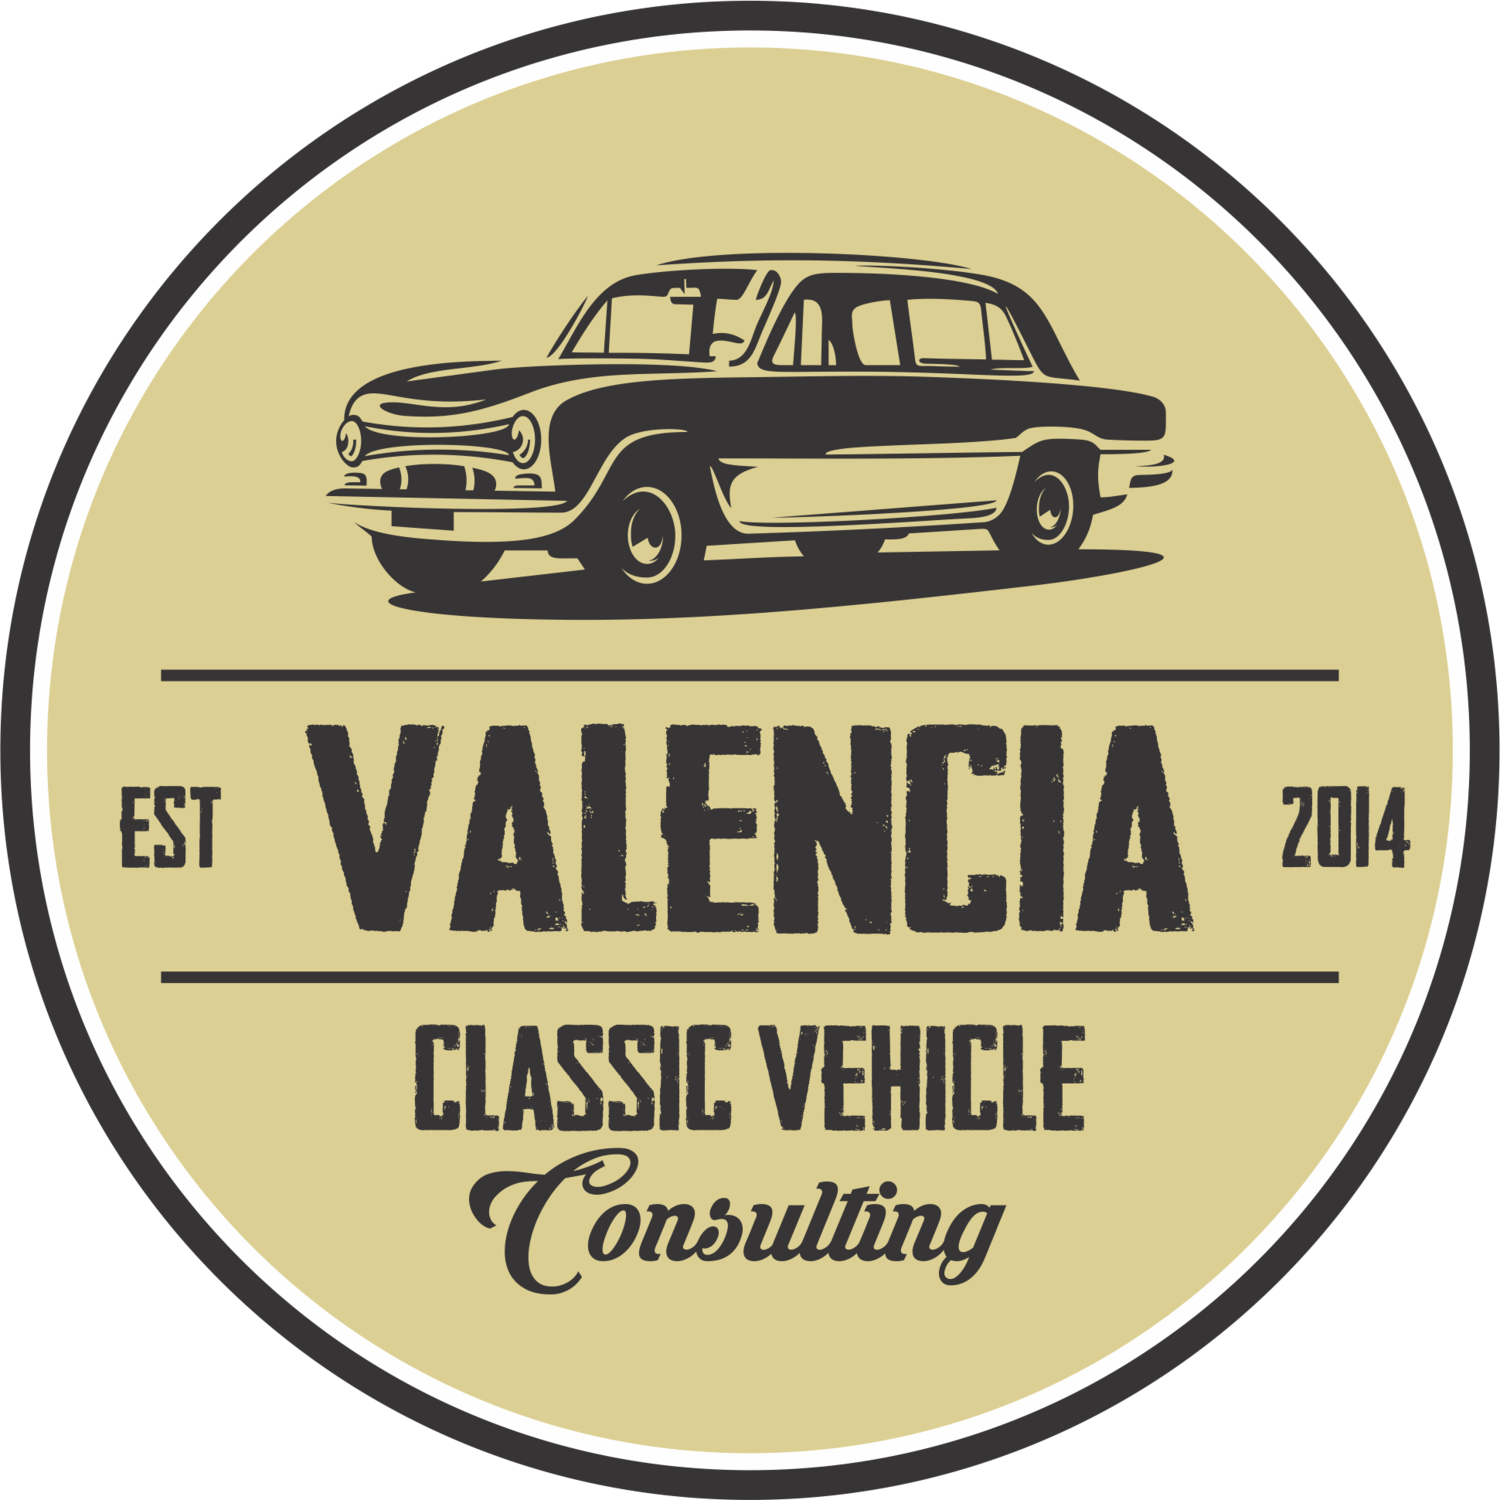 Valencia Classic Vehicle Consulting